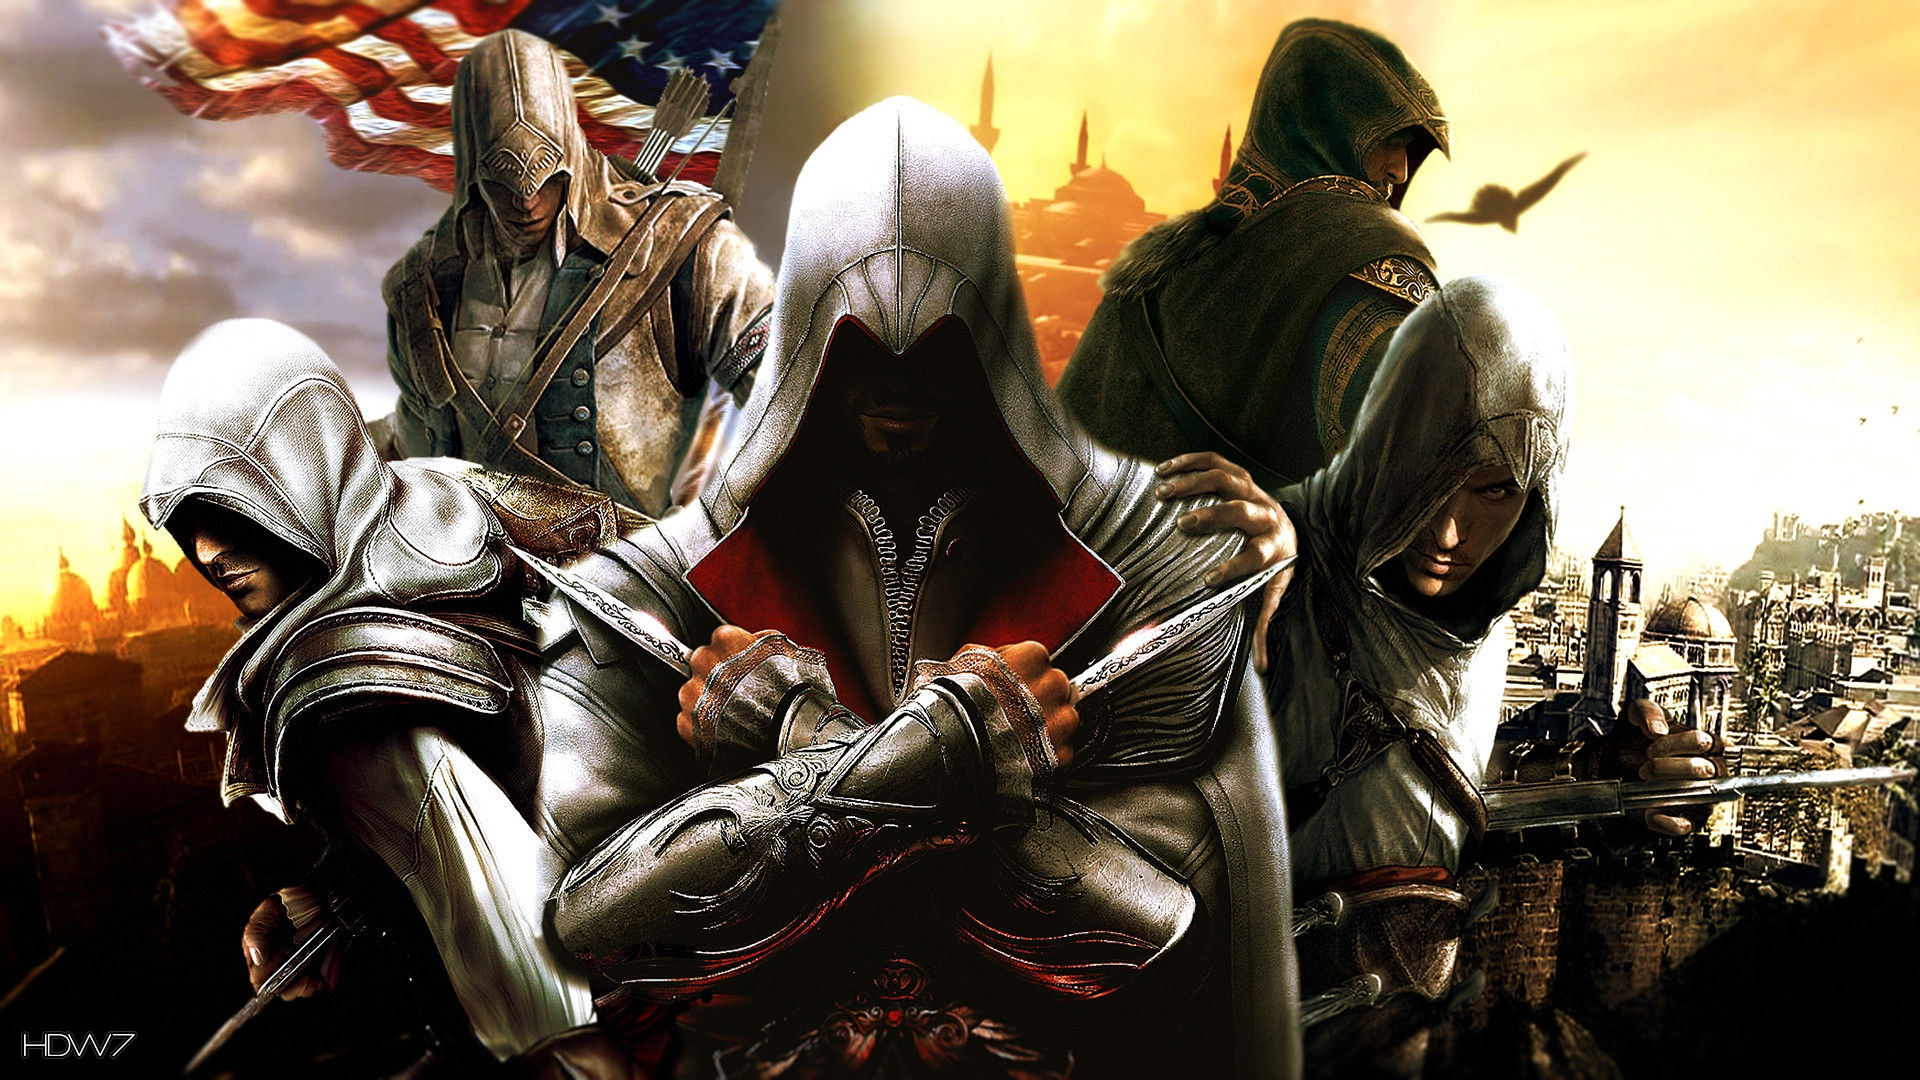 Assassins Creed Game Desmond Miles Hd Wallpaper Gallery 192